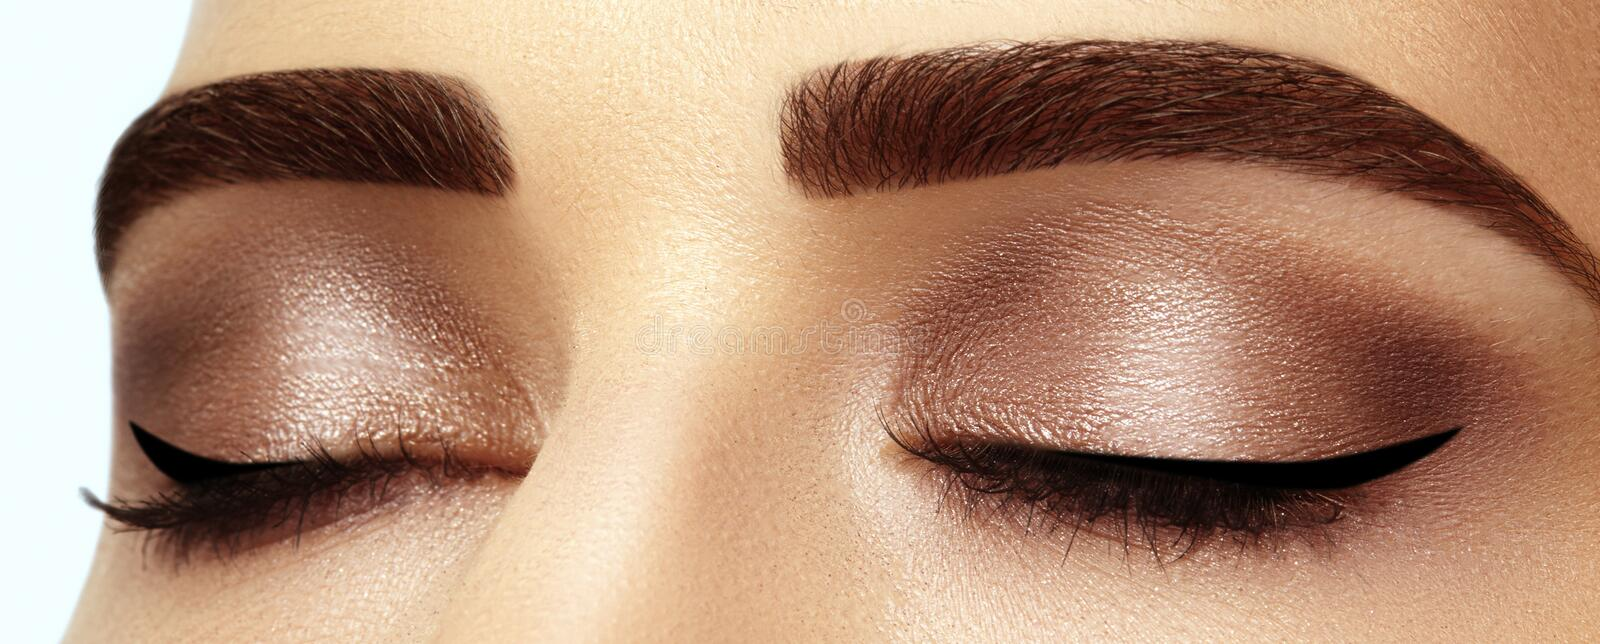 Perfect shape of eyebrows, brown eyeshadows and long eyelashes. Closeup macro shot of fashion smoky eyes visage stock photography